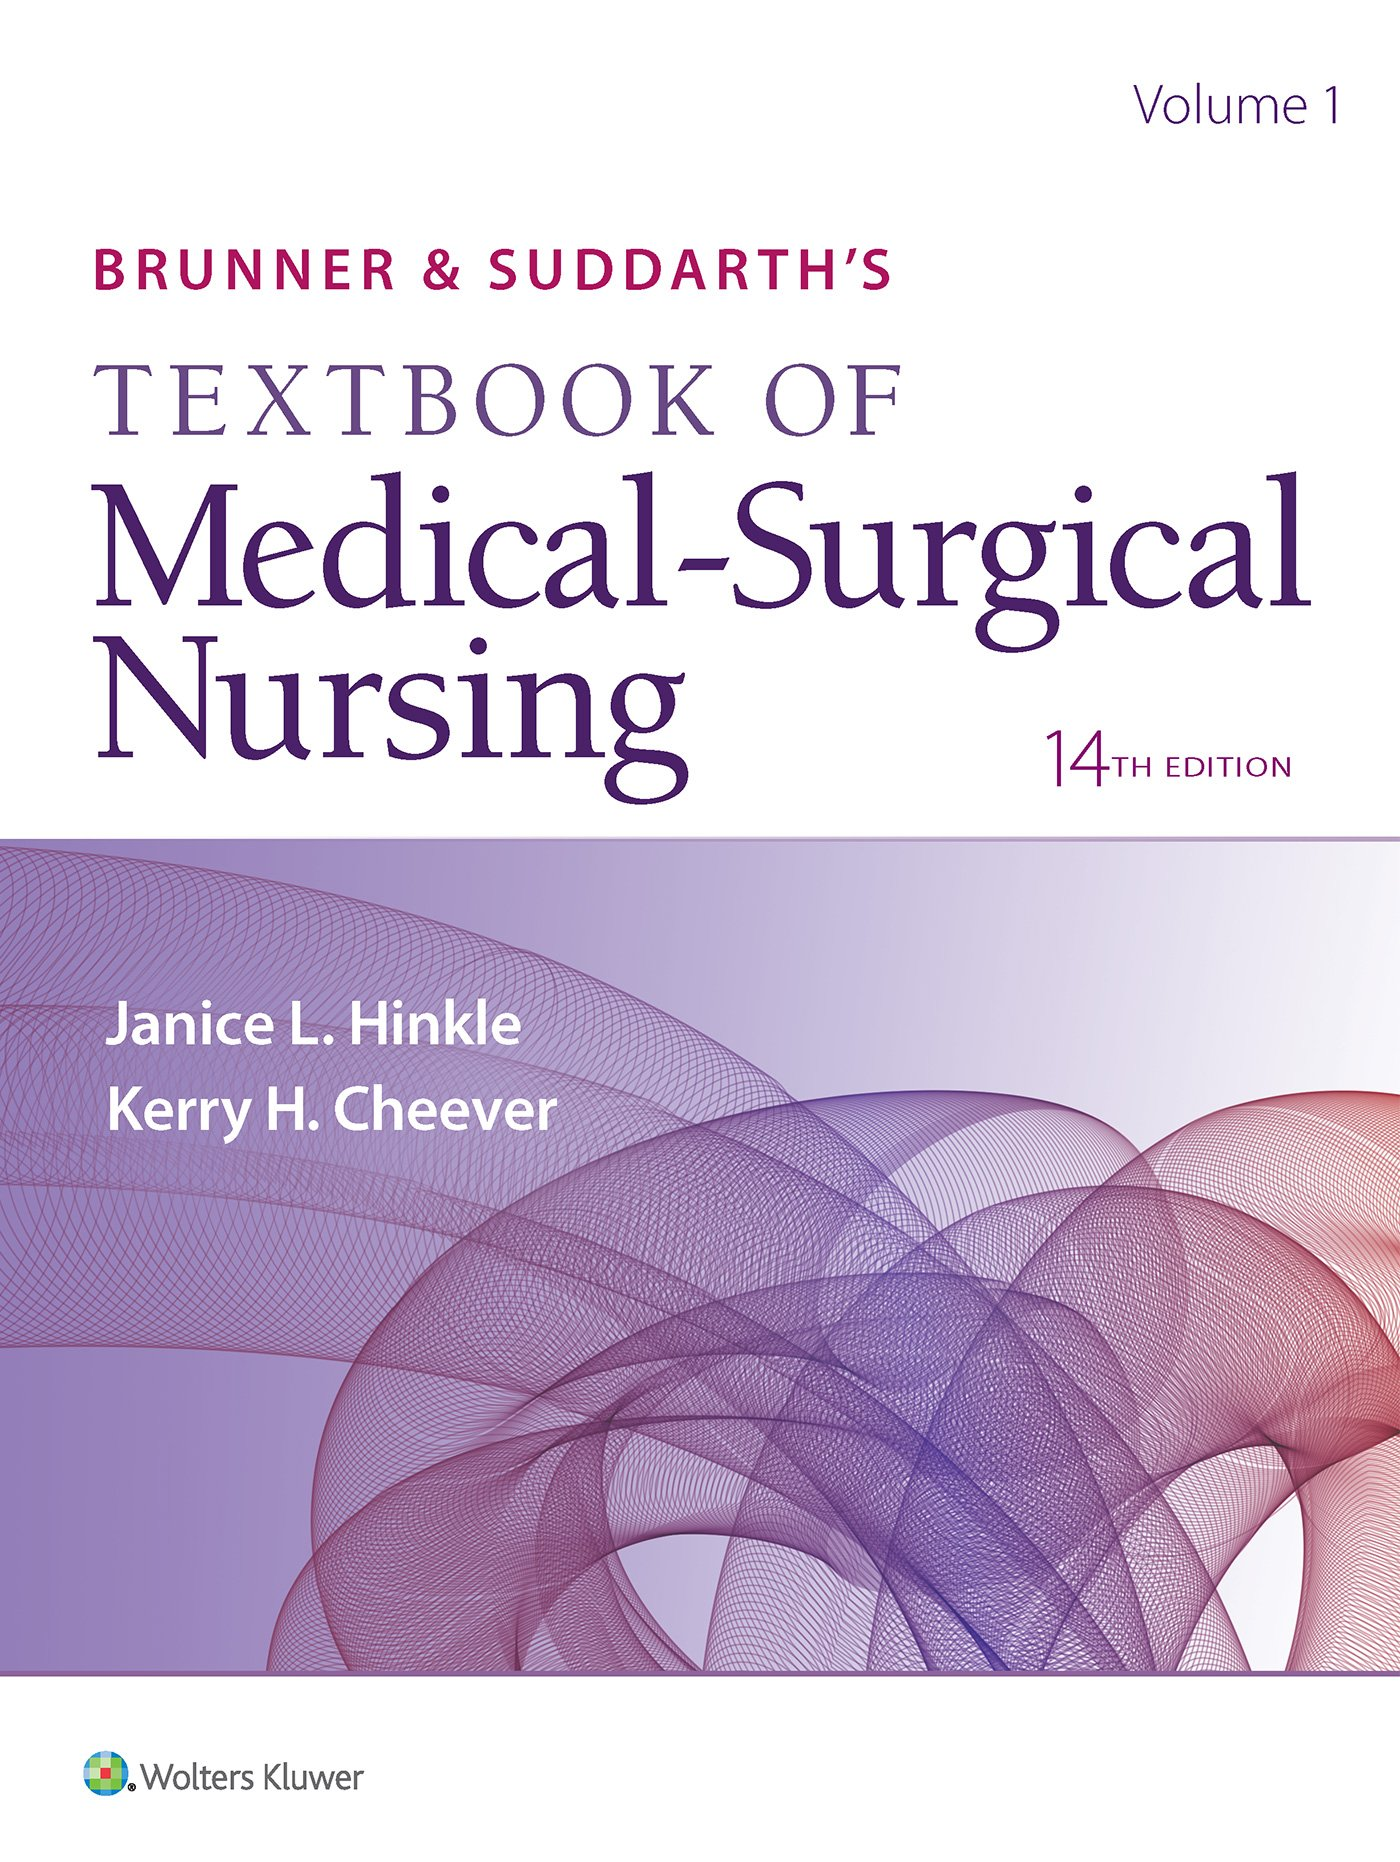 Brunner's Textbook of Medical-Surgical Nursing 14th edition 2-vol + Lab Handbook + Study Guide Package by LWW